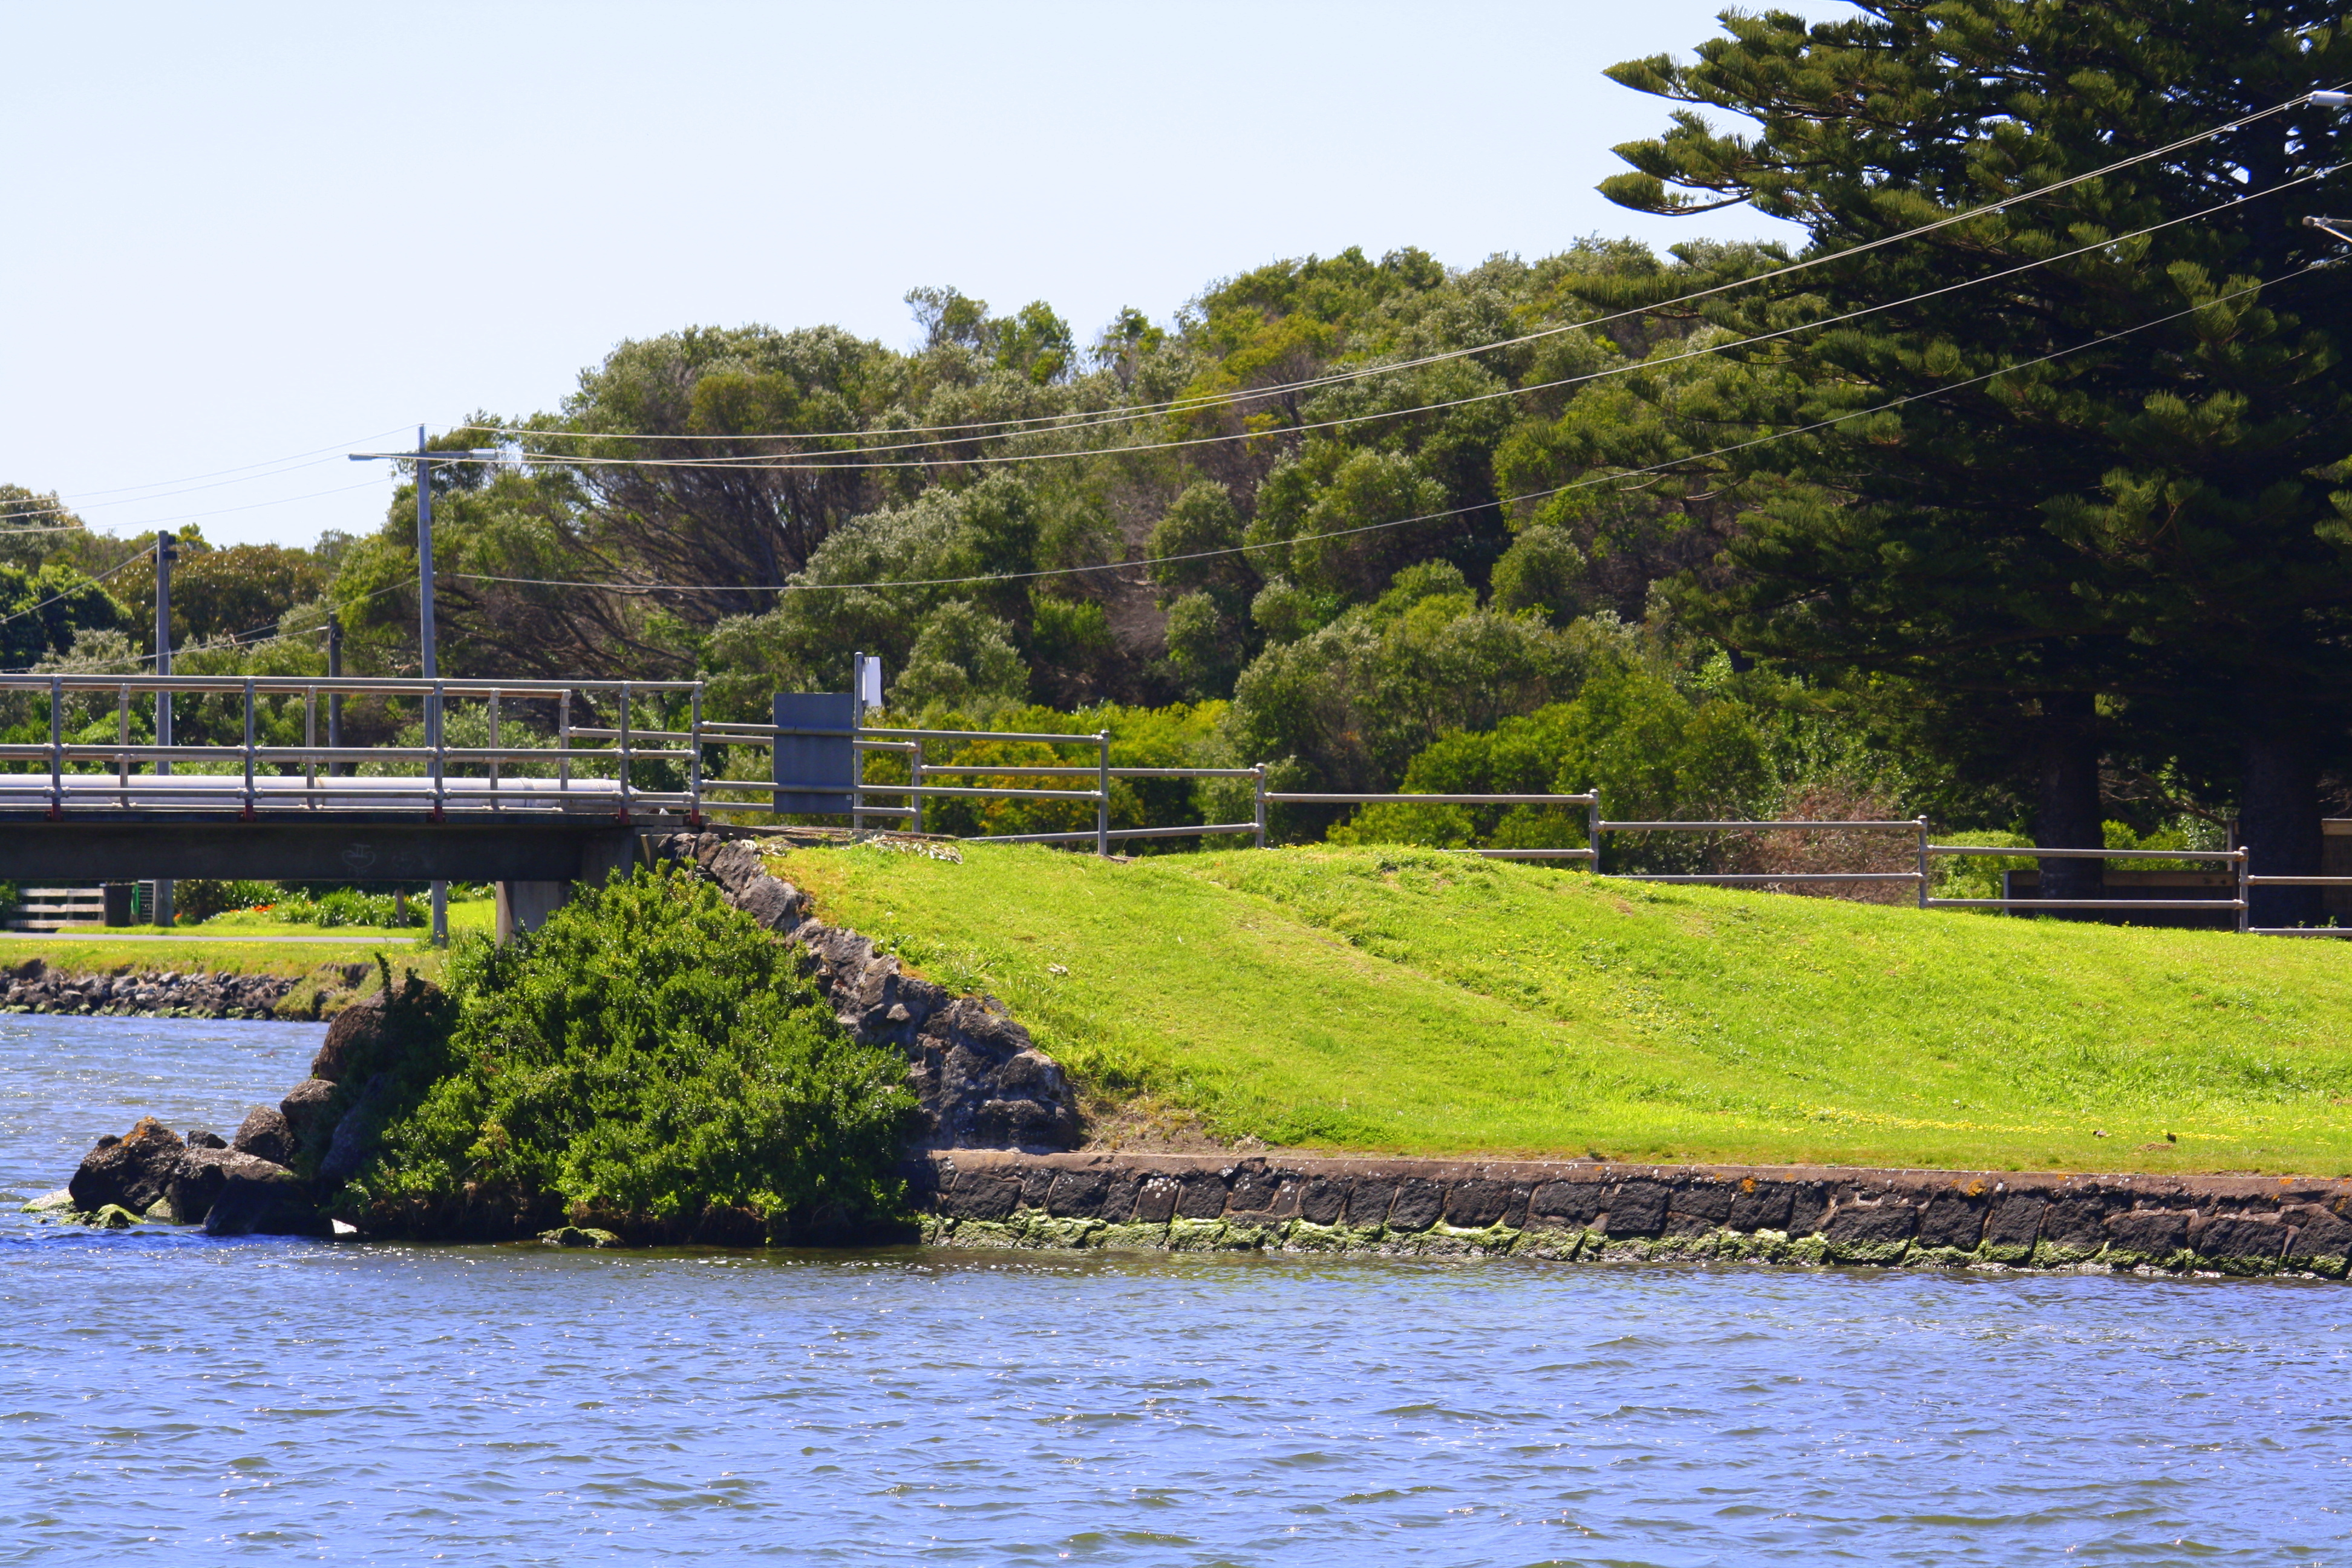 A weekend at Port Fairy